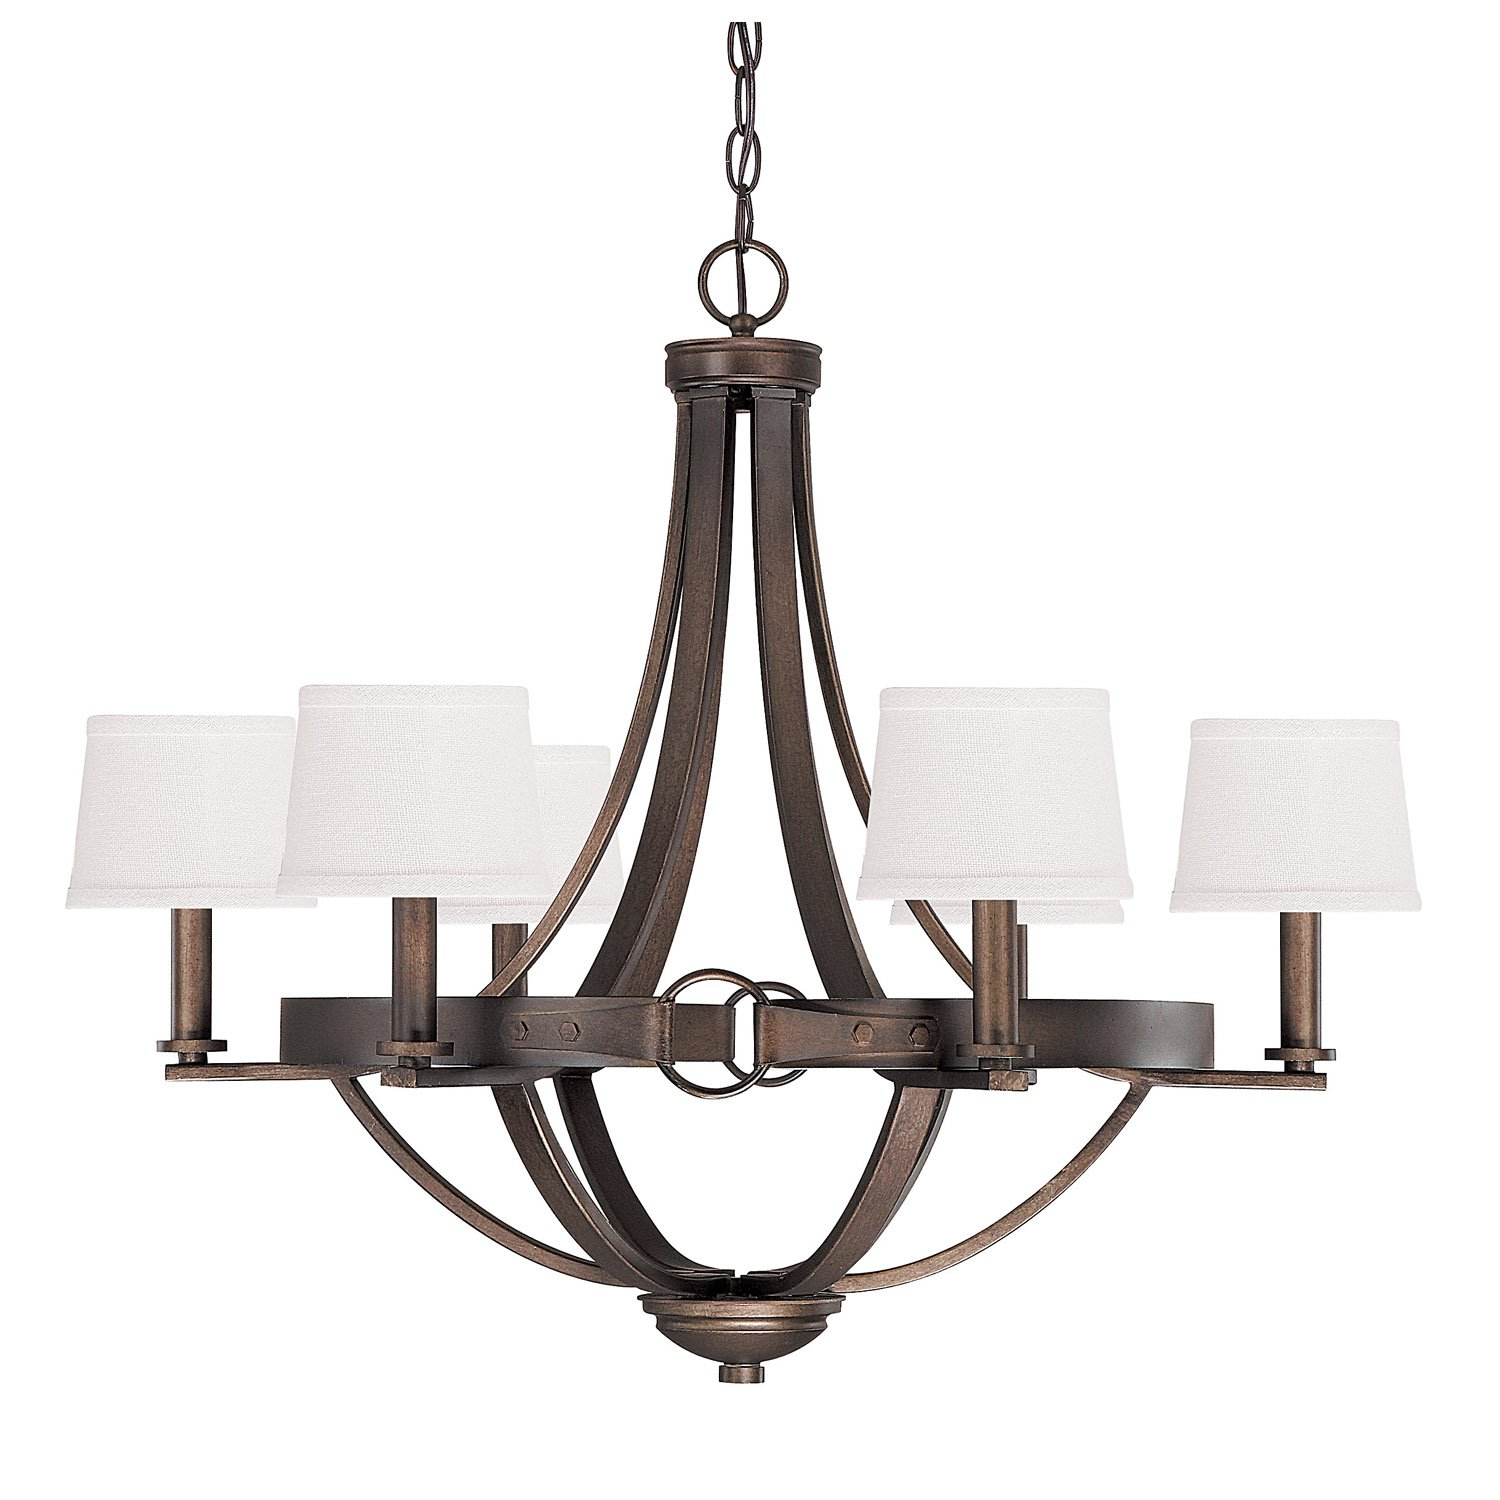 "Capital Lighting 4206TB-546 Chastain 6-Light Chandelier, Tobacco Finish with Decorative Shades, 29.25"" x 29.25"" x 24.5"""